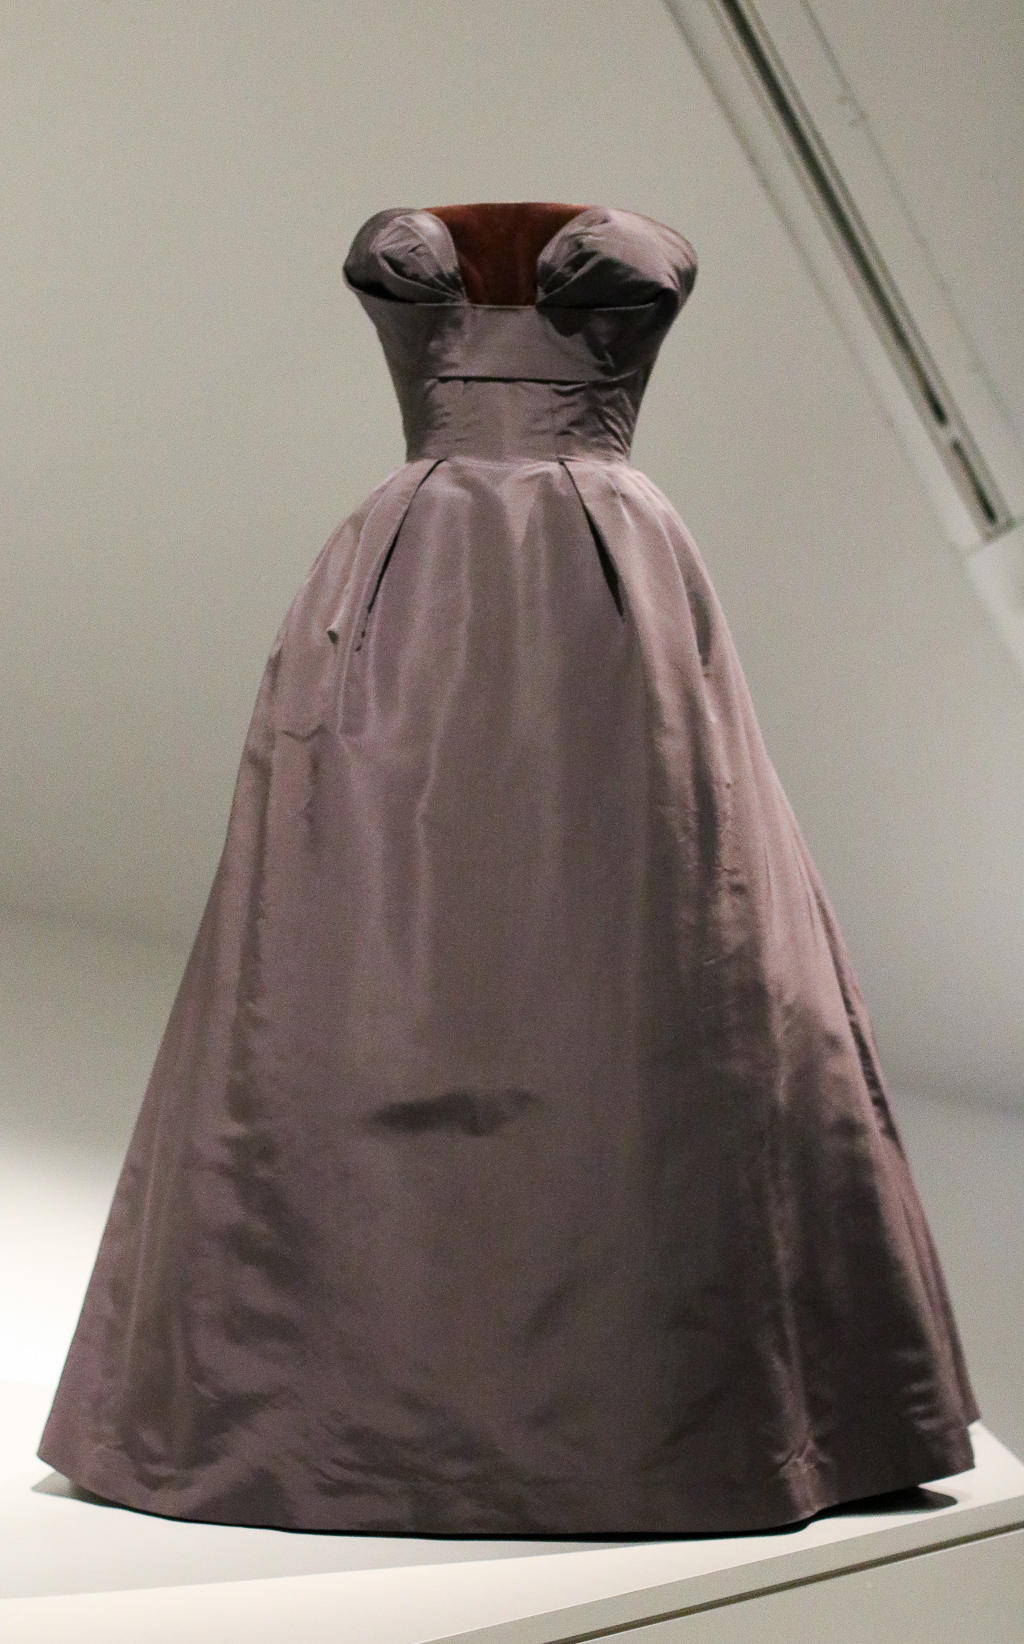 I was invited to view the Christian Dior Exhibit Presented by Holt Renfrew at the ROM - Here is my experience | Style Domination